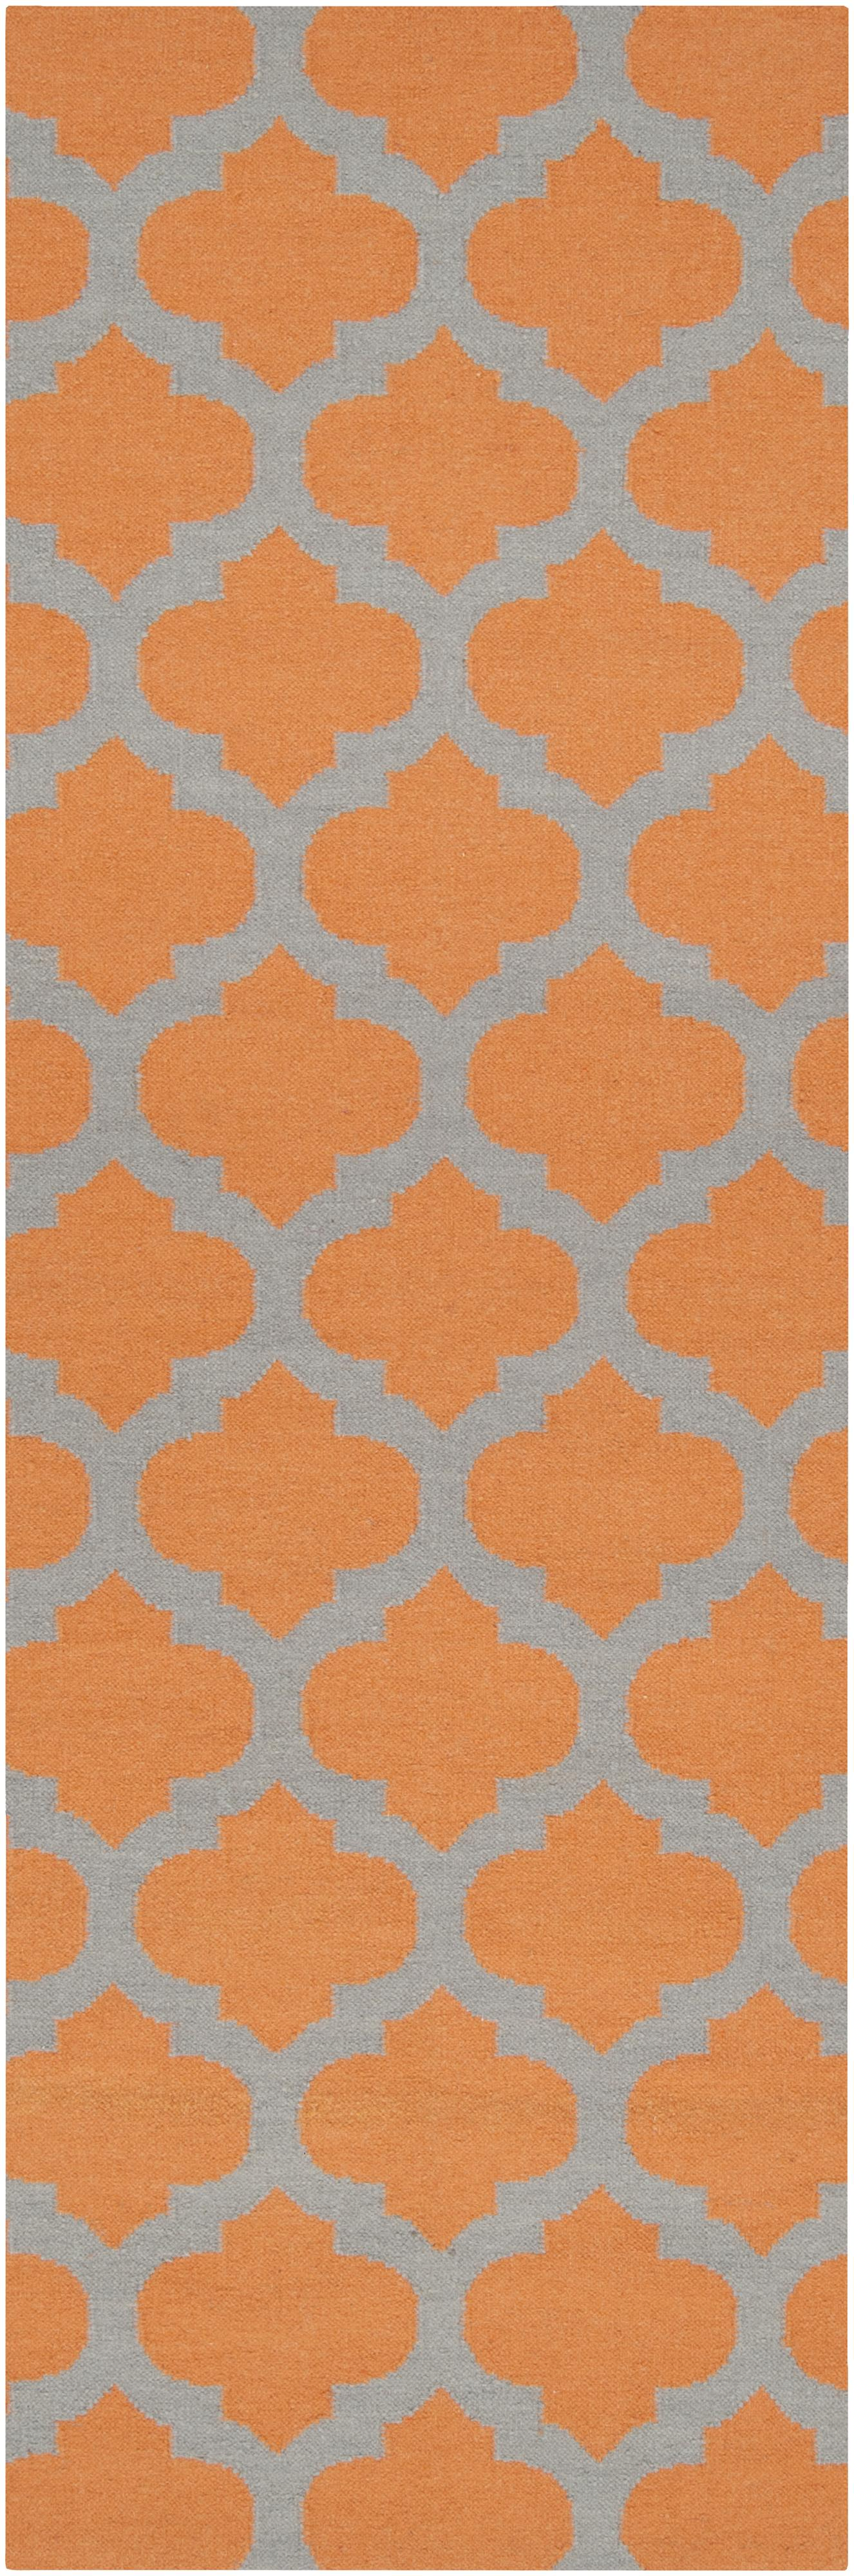 "Surya Rugs Frontier 2'6"" x 8' - Item Number: FT119-268"